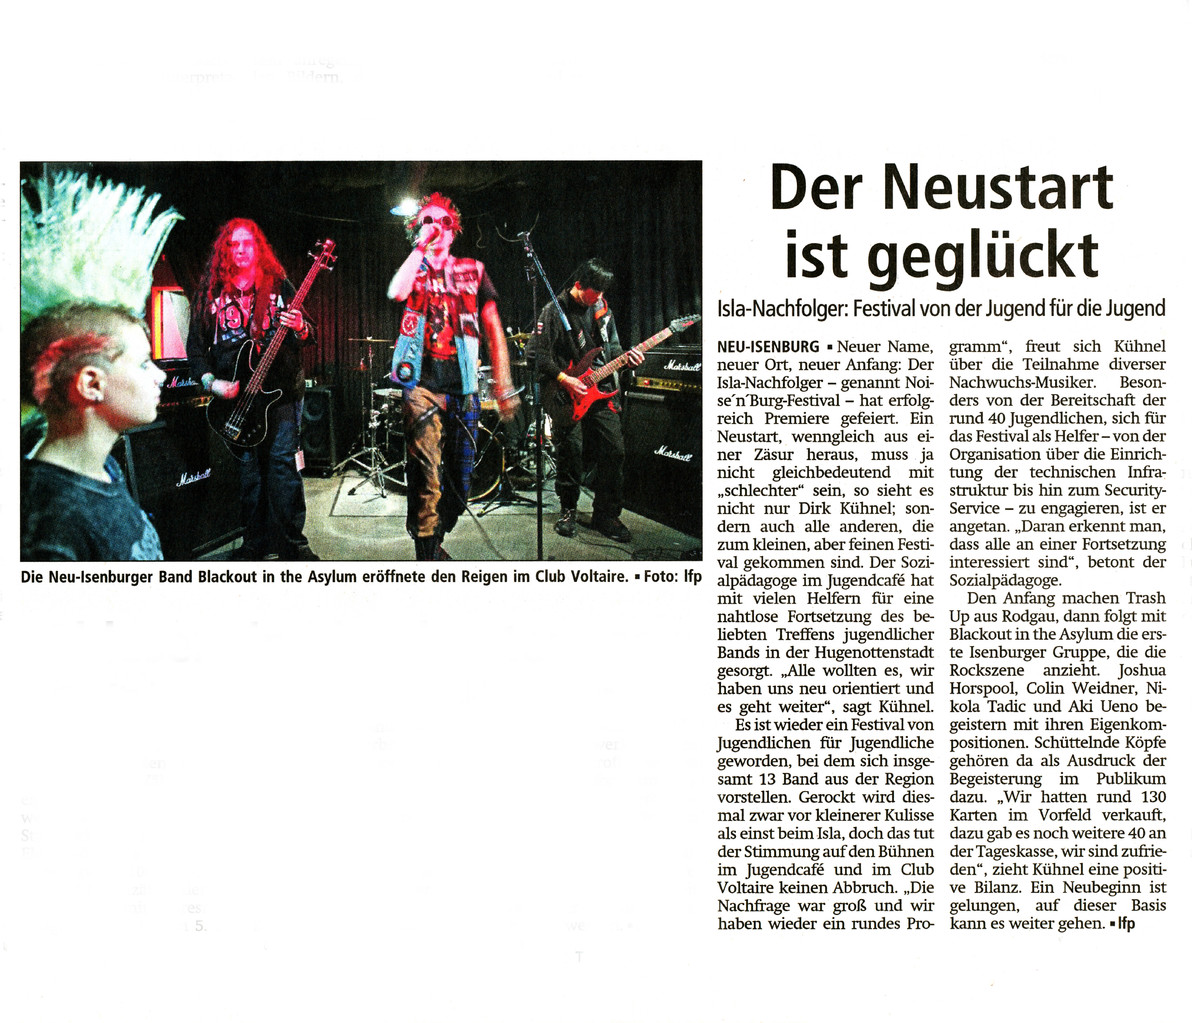 Offenbach Post, 8. November 2013